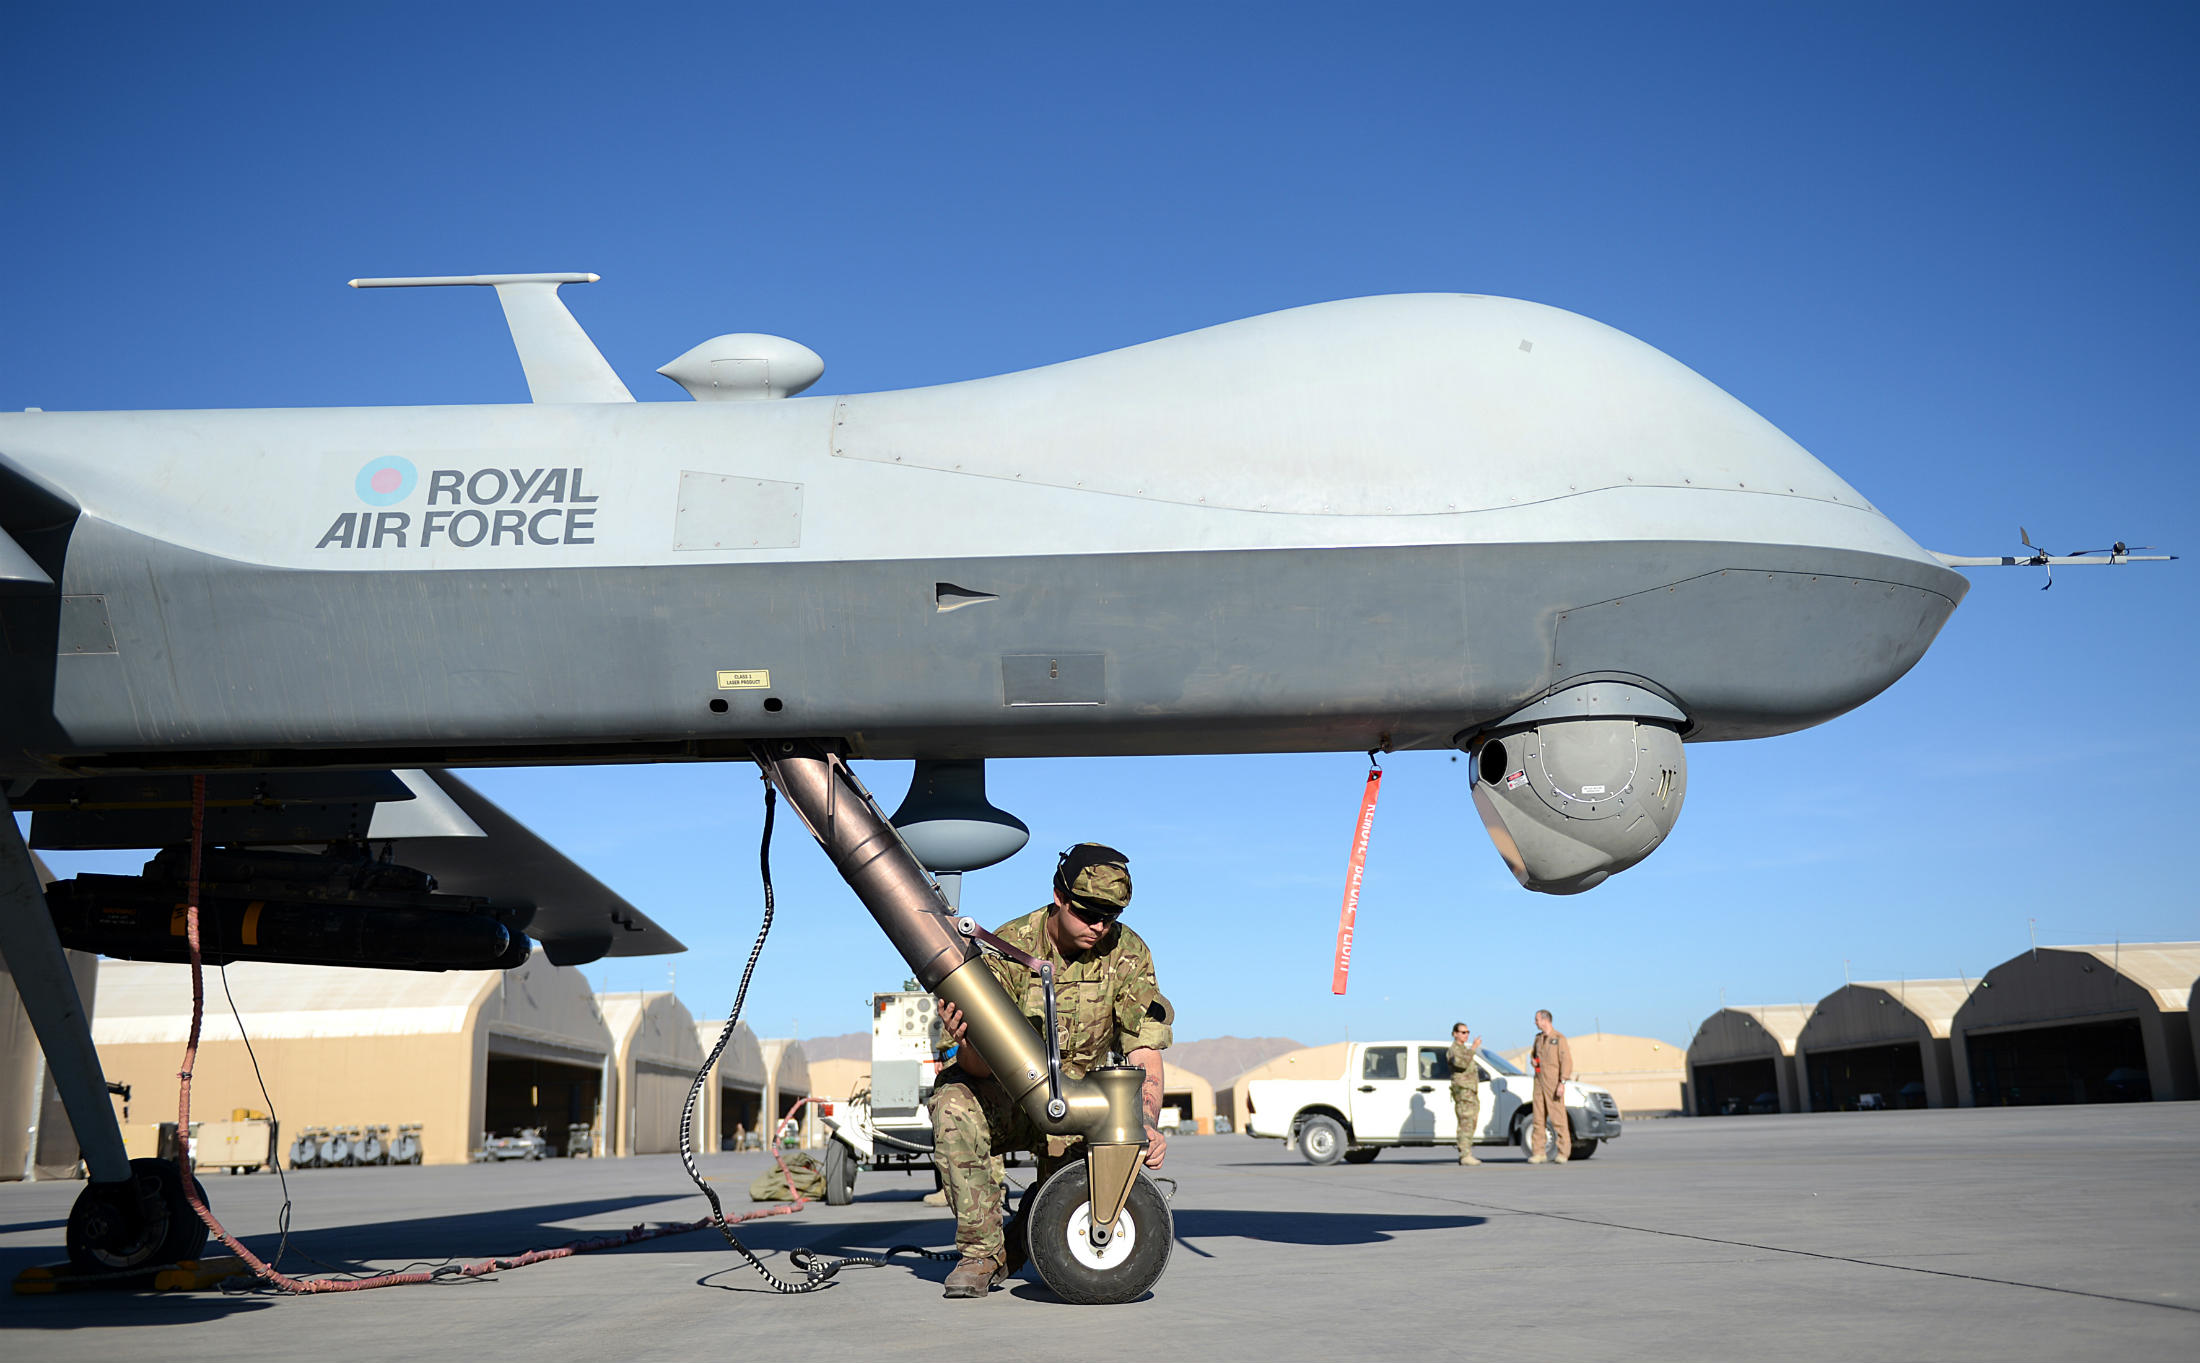 UK Reaper Drones To Be Sent Iraq